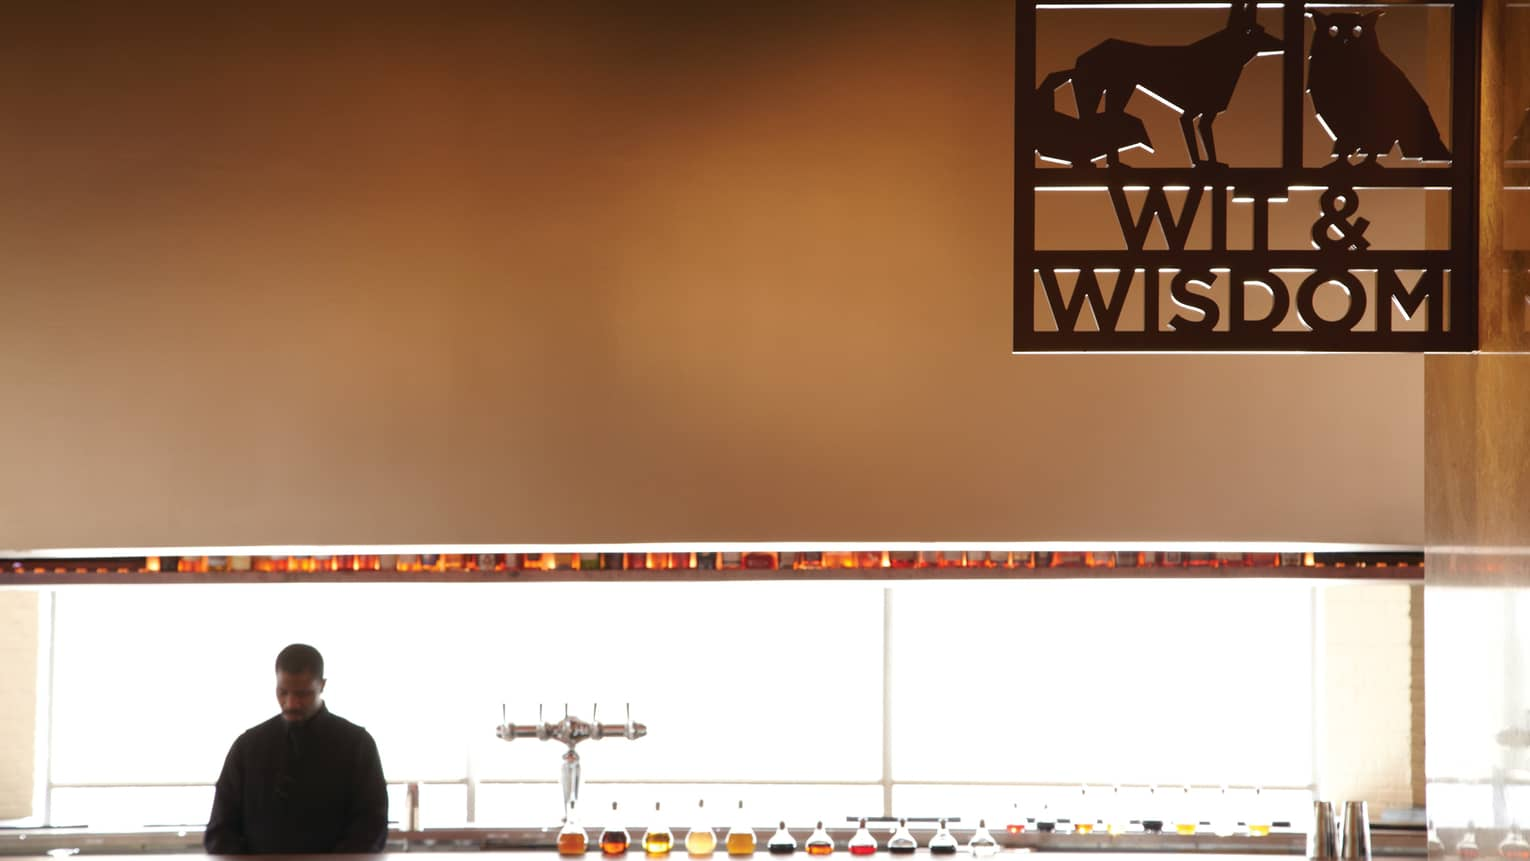 Silhouette of bartender at bar under high wall with black Wit and Wisdom sign